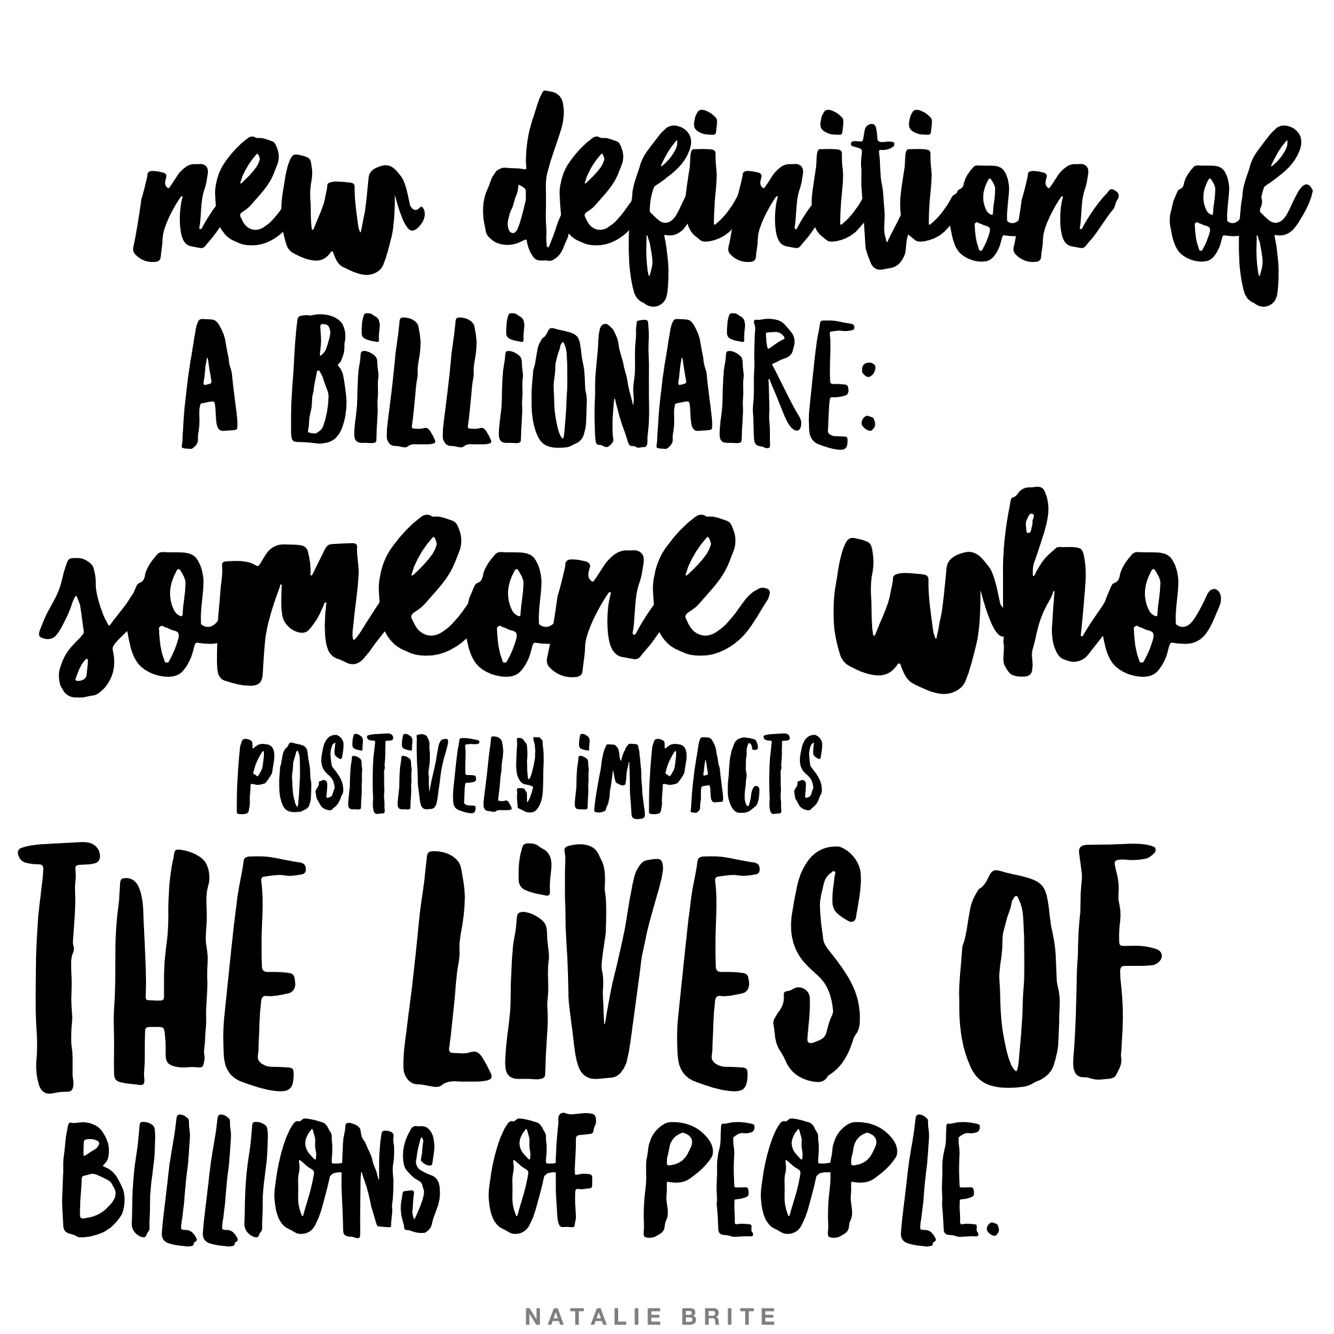 New Definition Of A Billionaire